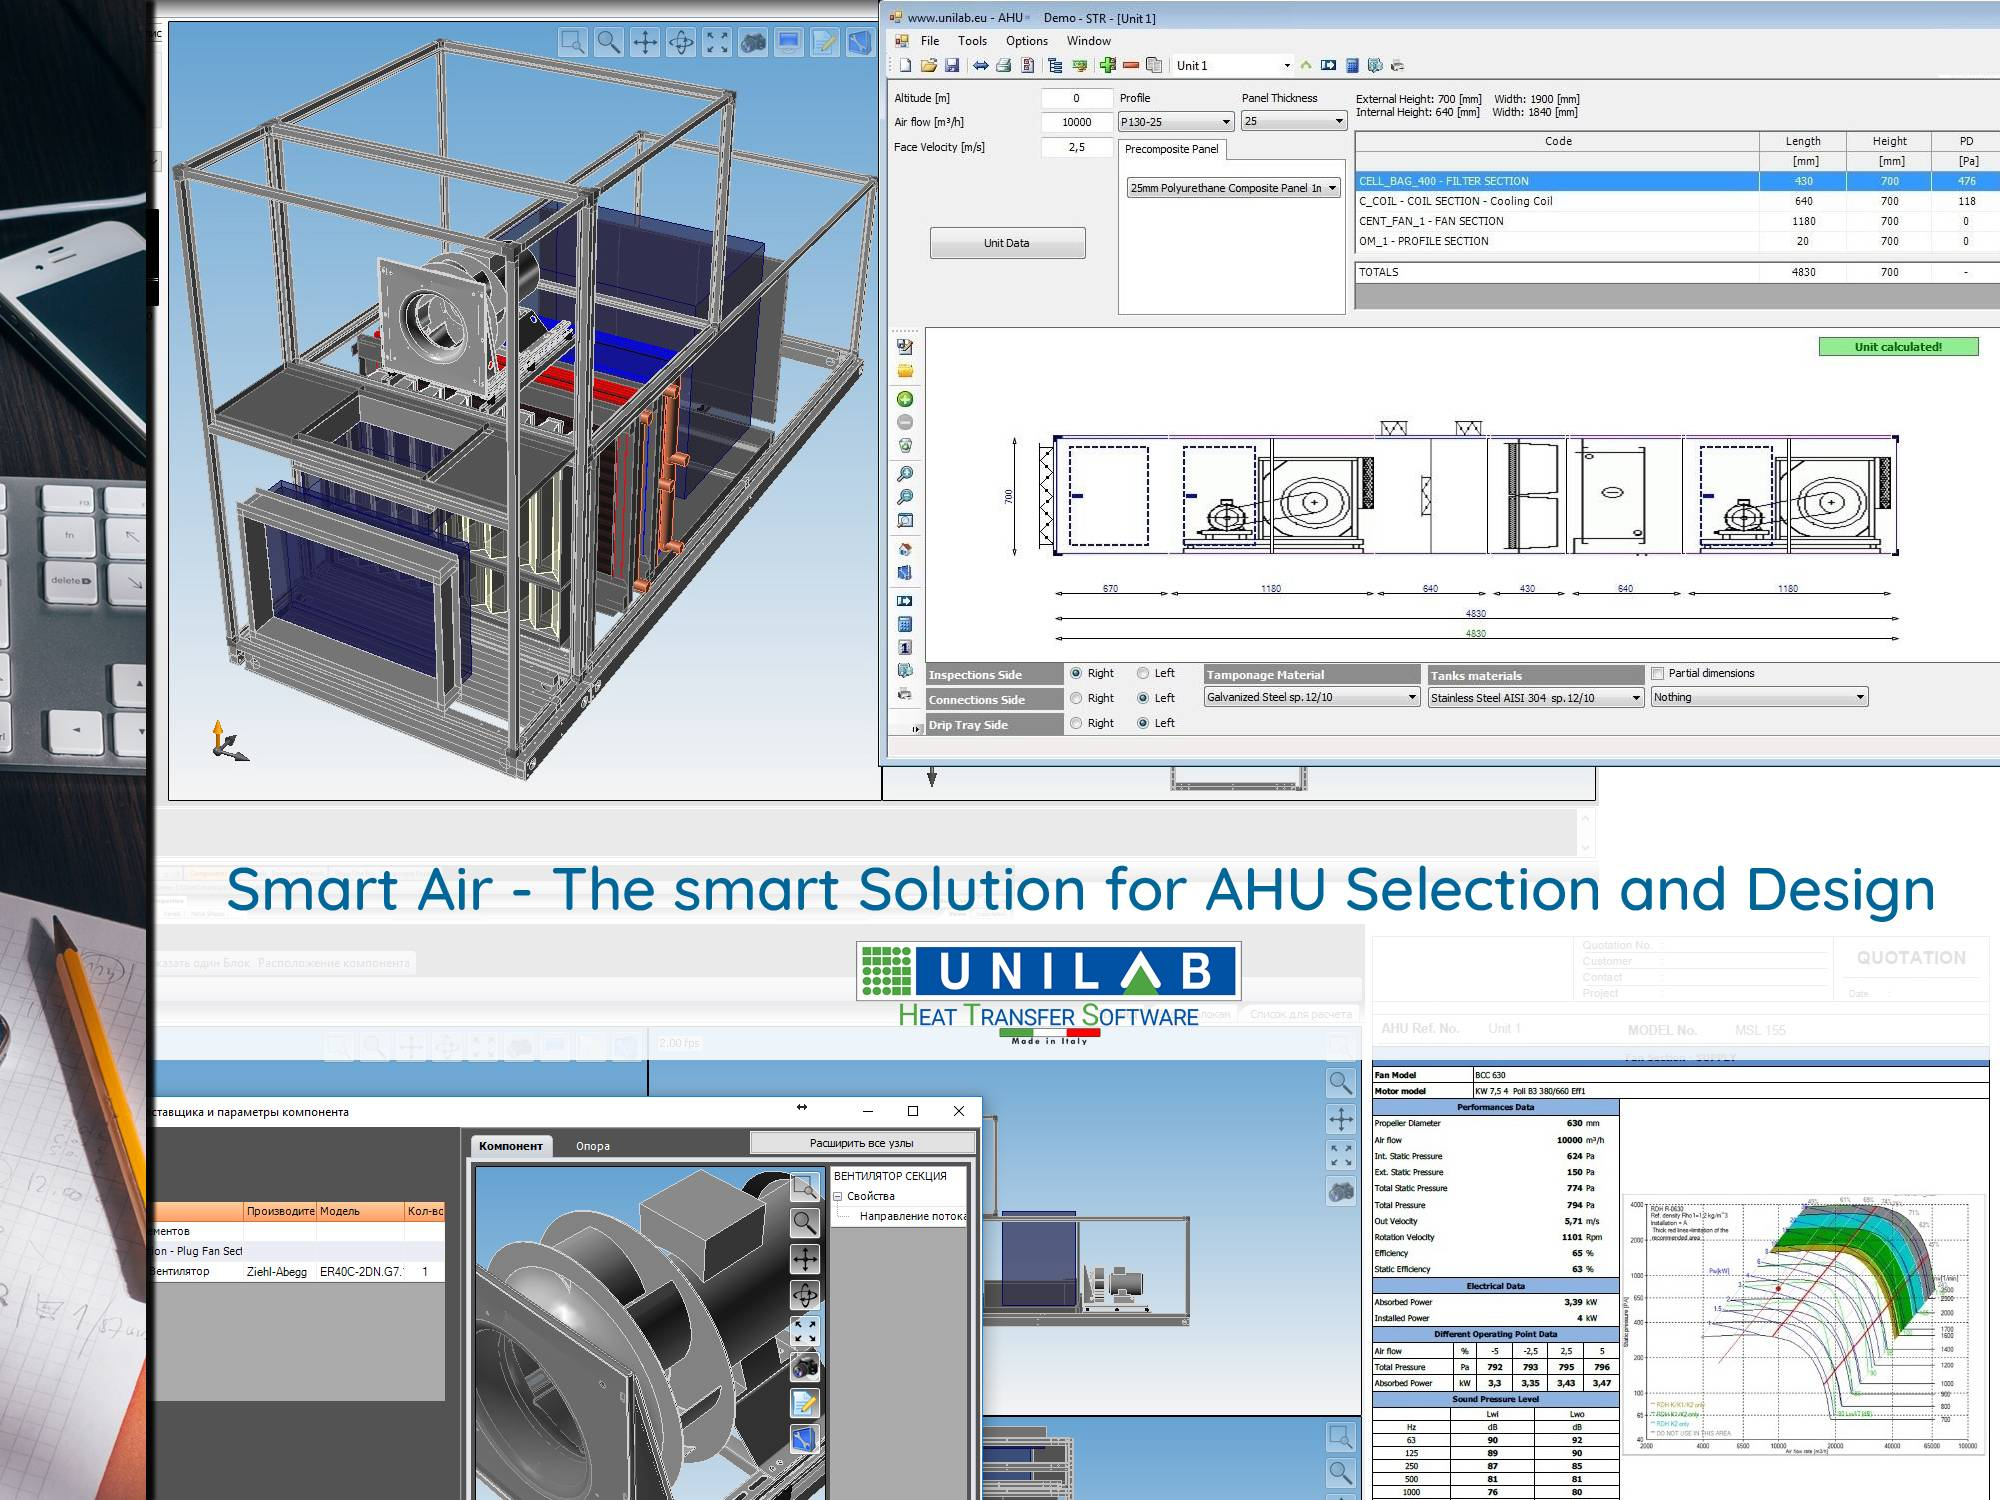 unilab heat transfer software blog Smart Air AHU selection